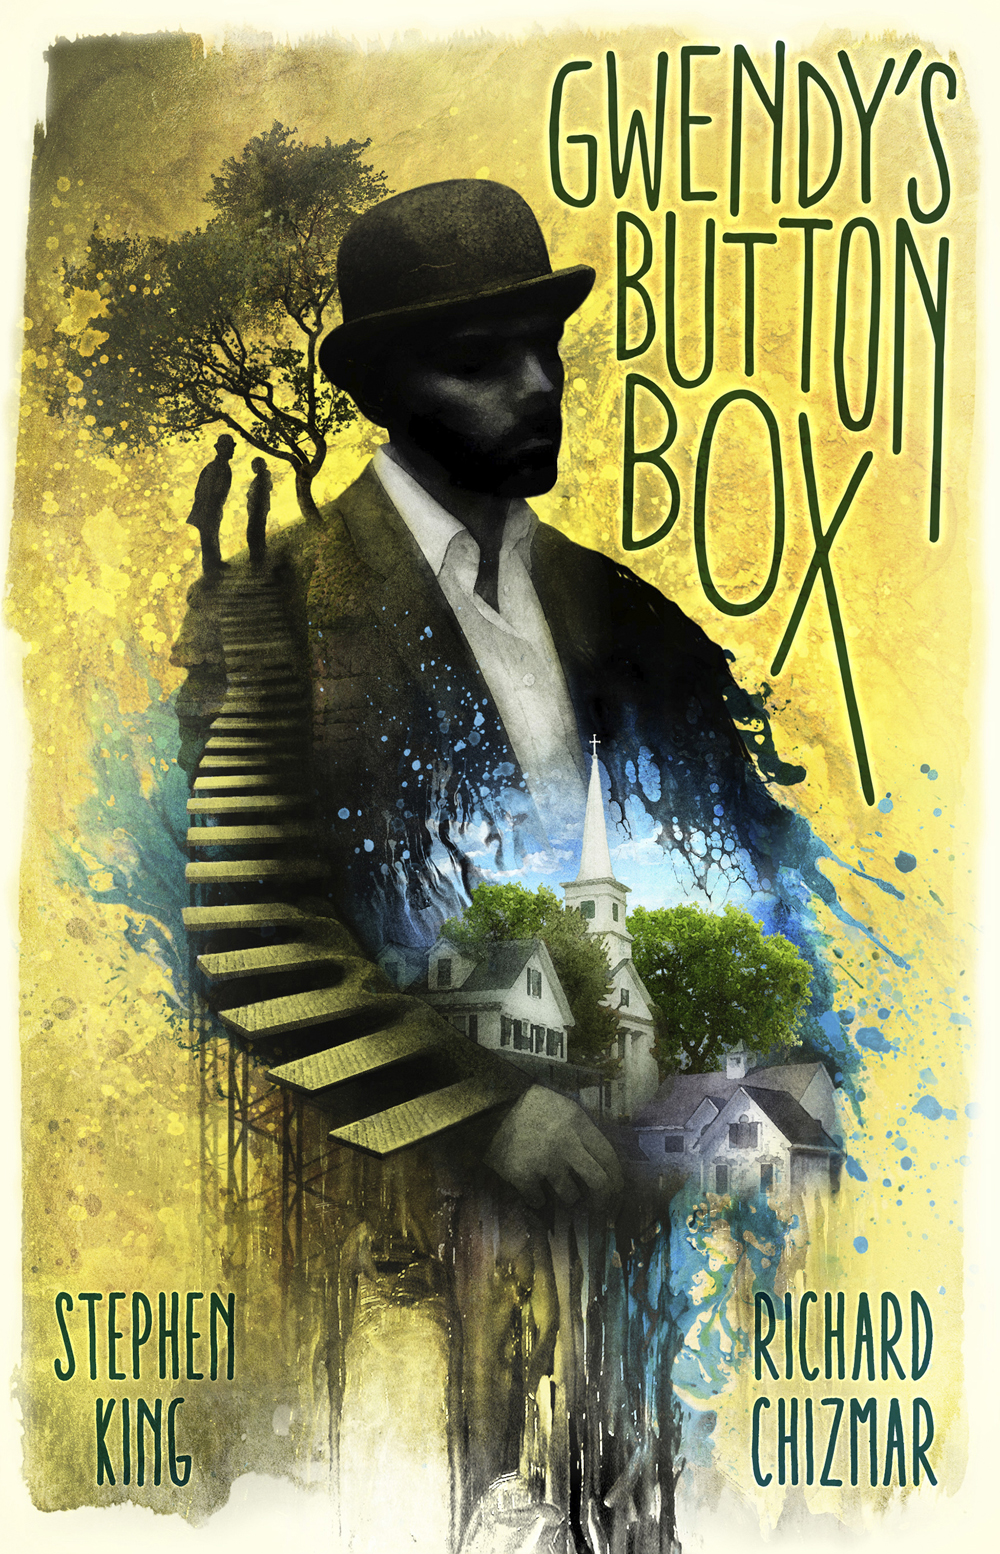 button box songs